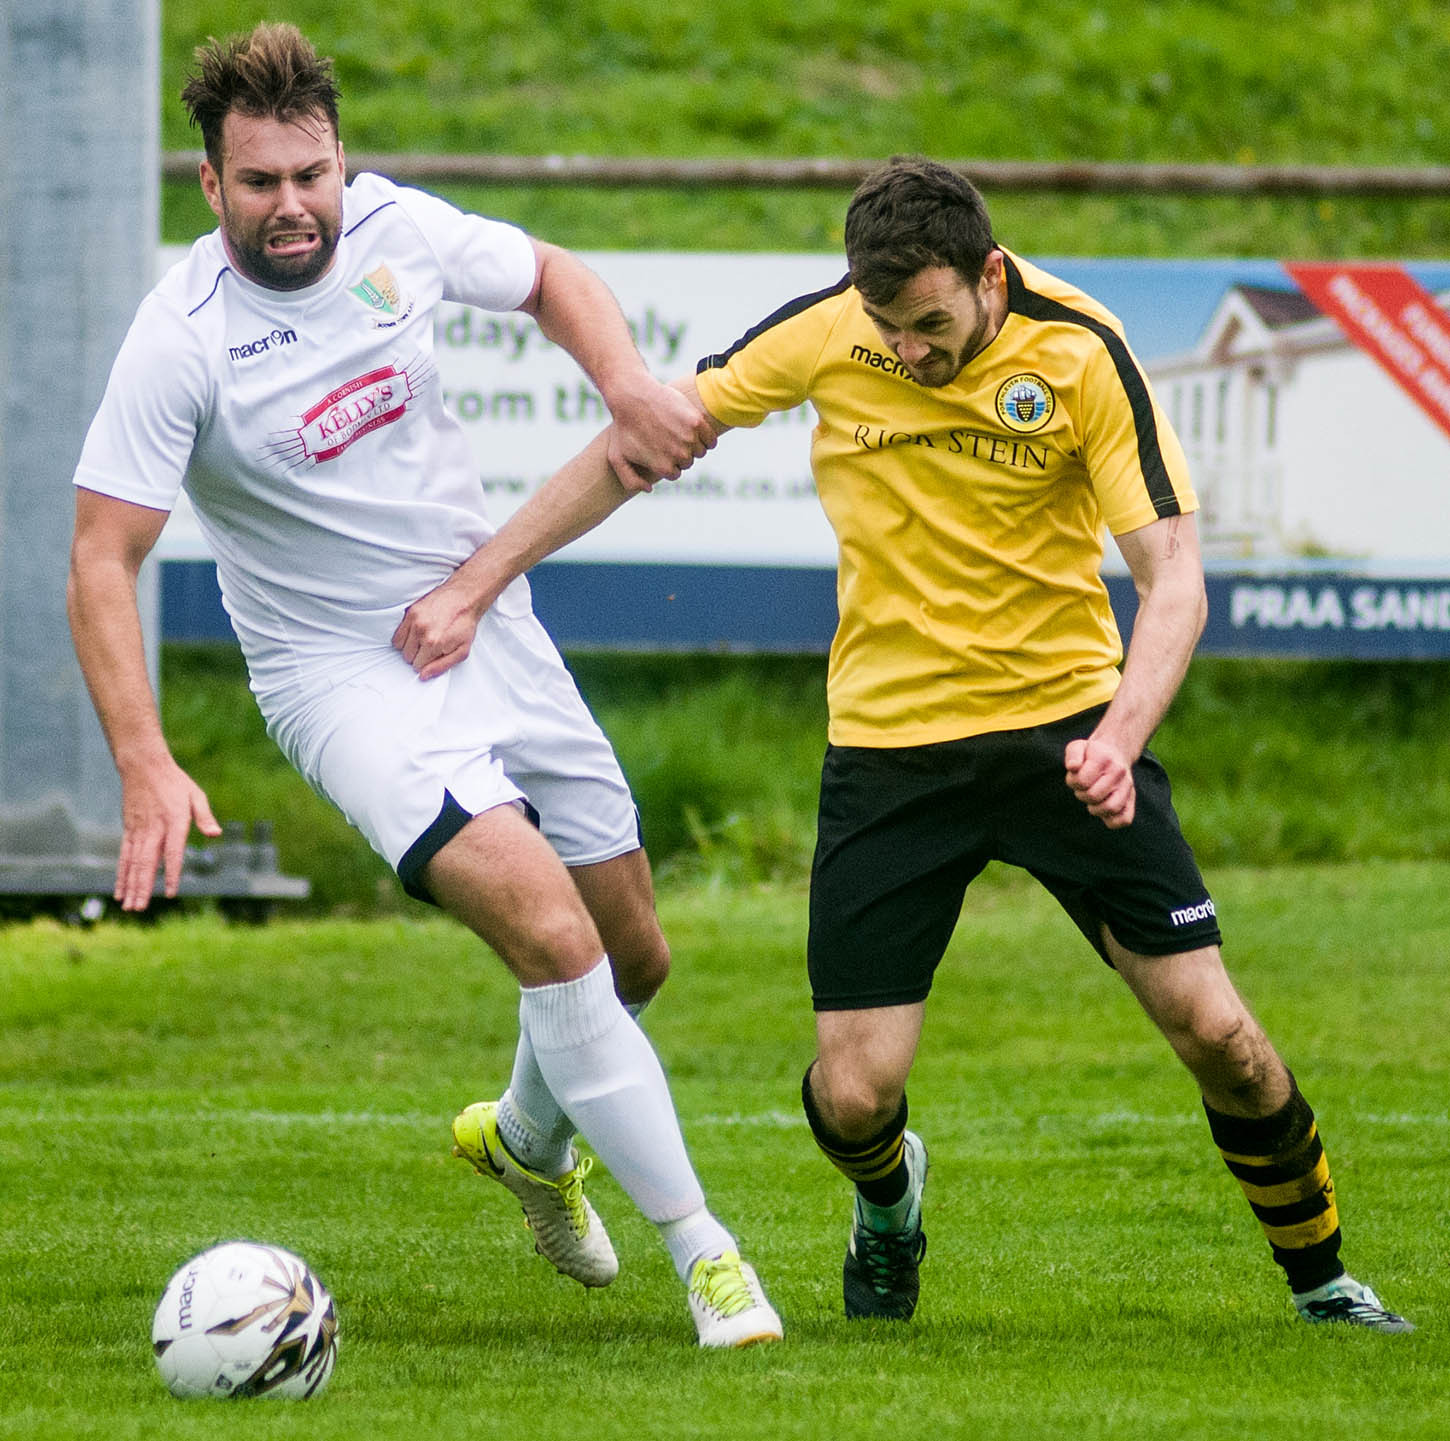 Dan Hindmarch (right), who scored a spectacular goal for Porthleven on Saturday